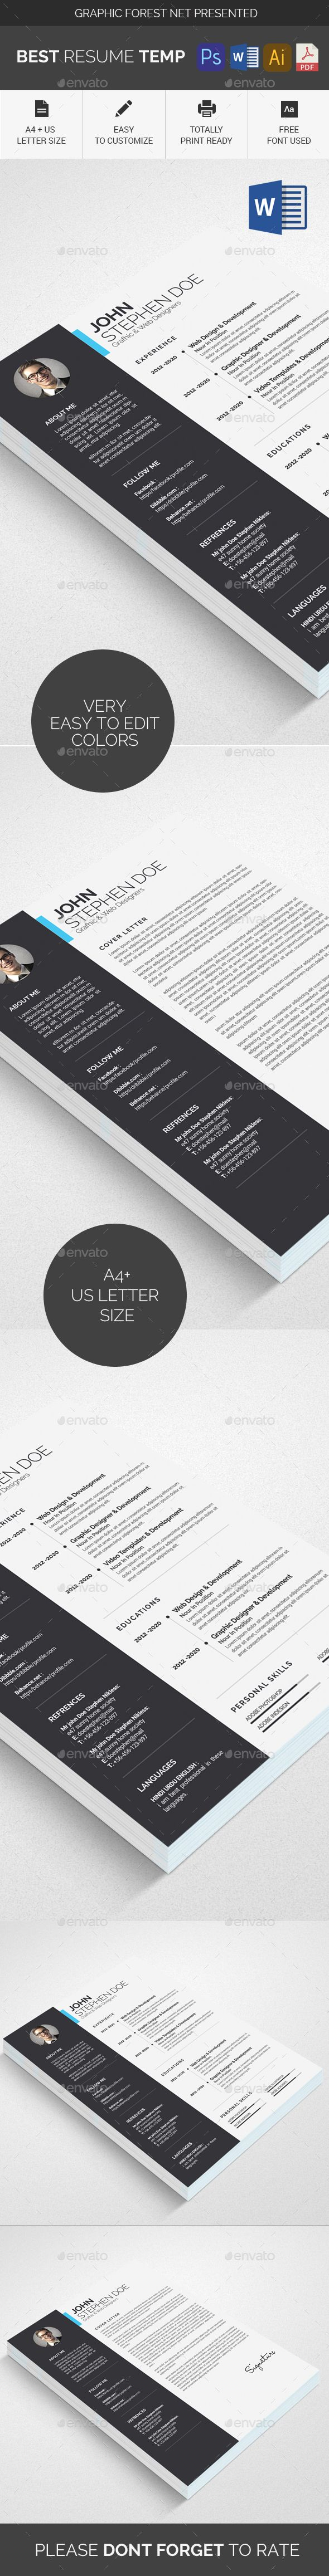 Resume Template #infographic #elegant  • Download here → https://graphicriver.net/item/resume-template/21292978?ref=pxcr